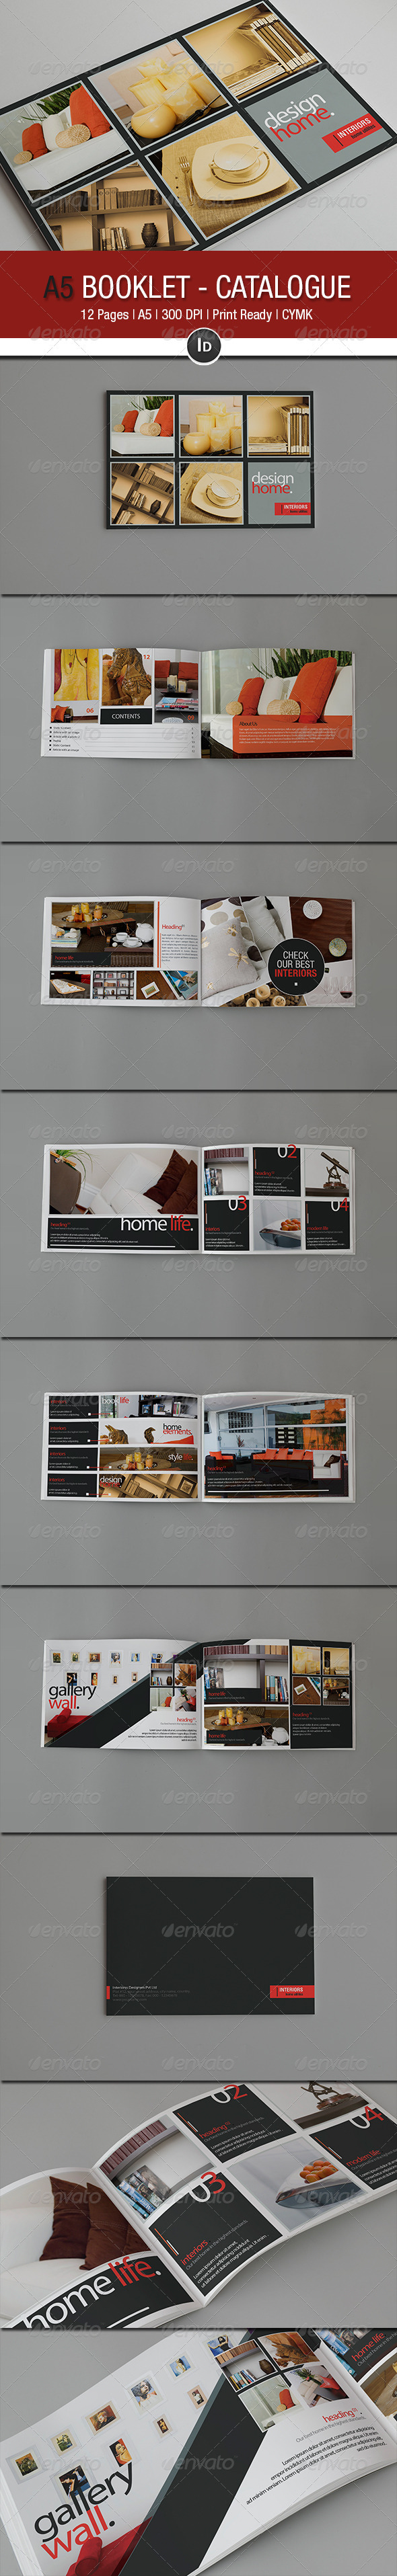 GraphicRiver A5 Booklet Catalogue V 2.0 2475162